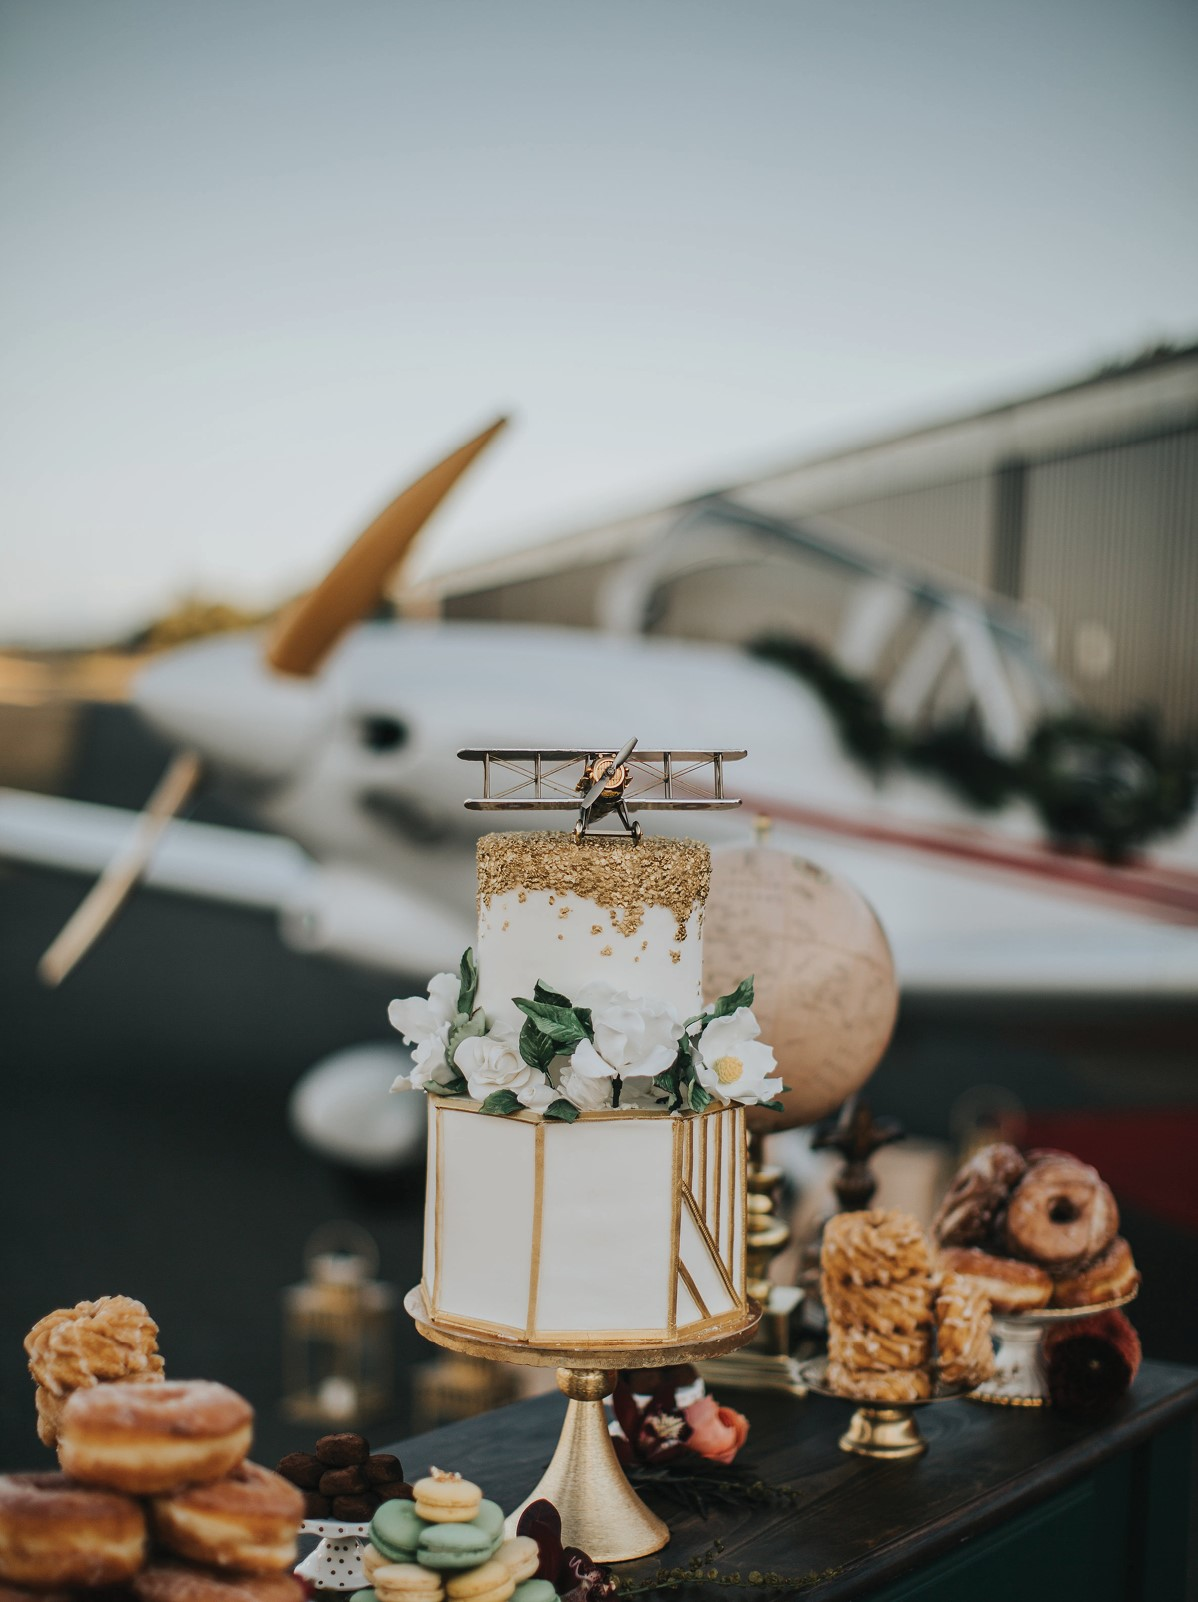 White and Gold Cake with airplane topper by Passion for Cakes